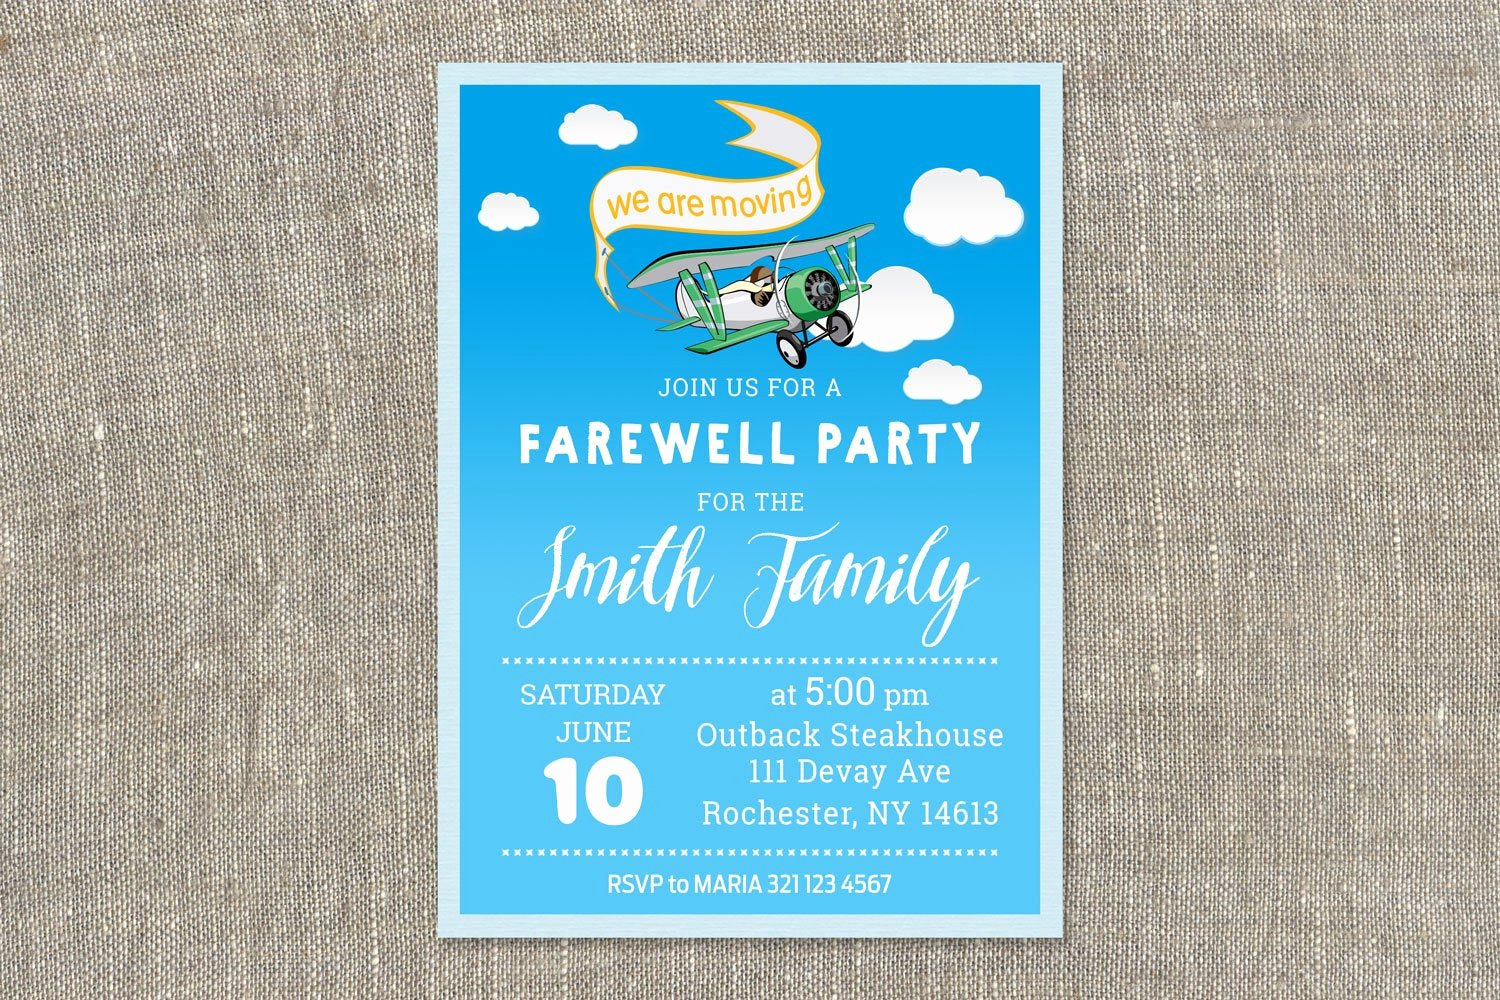 Going Away Party Invitation Fresh Going Away Party Invitations Farewell Party Invite We are